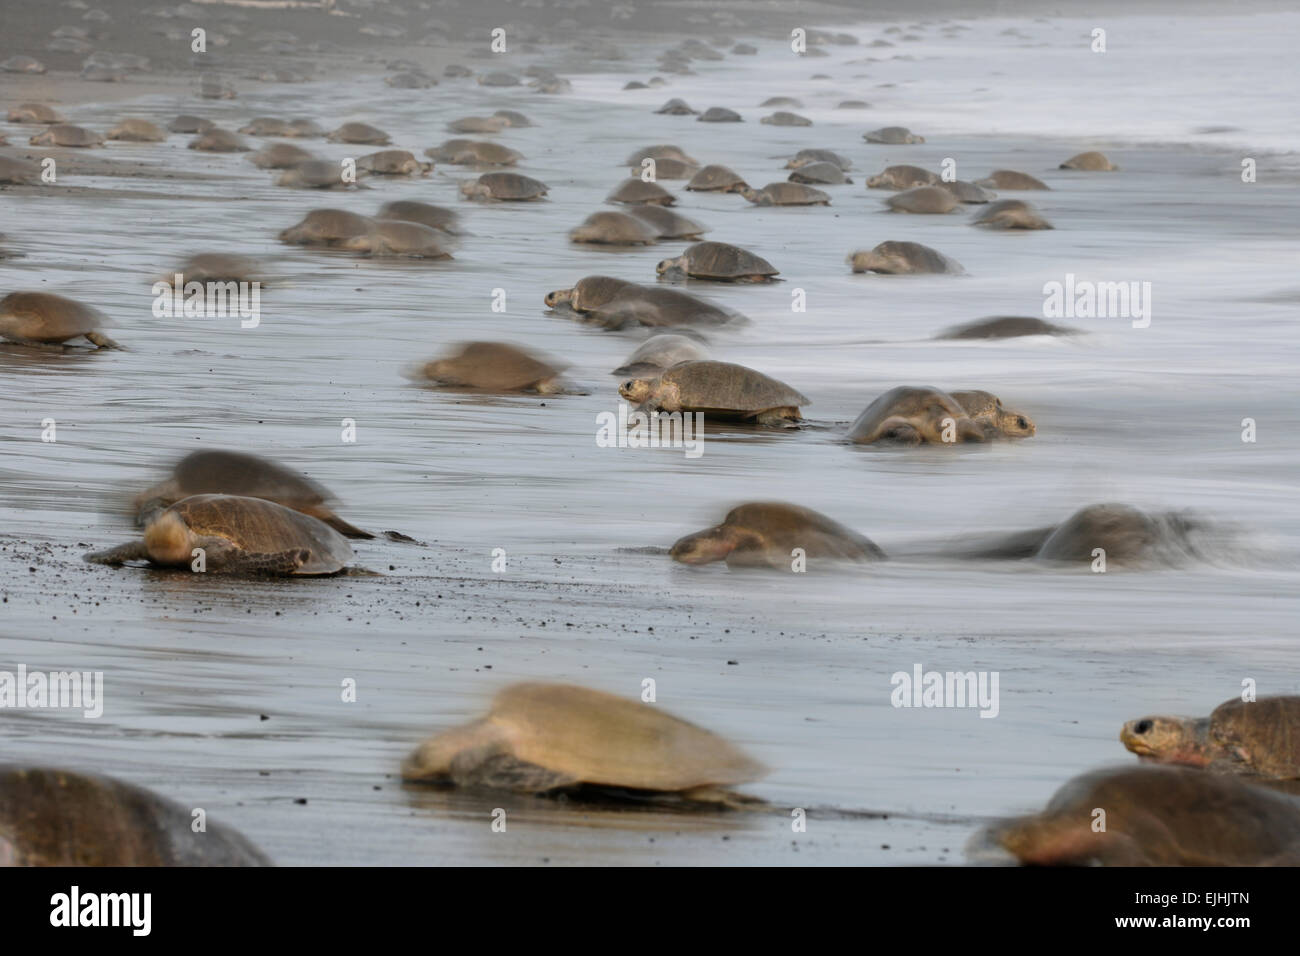 The arrival of one olive ridley sea turtle (Lepidochelys olivacea) at the beach of Ostional, Costa Rica, Pacific - Stock Image